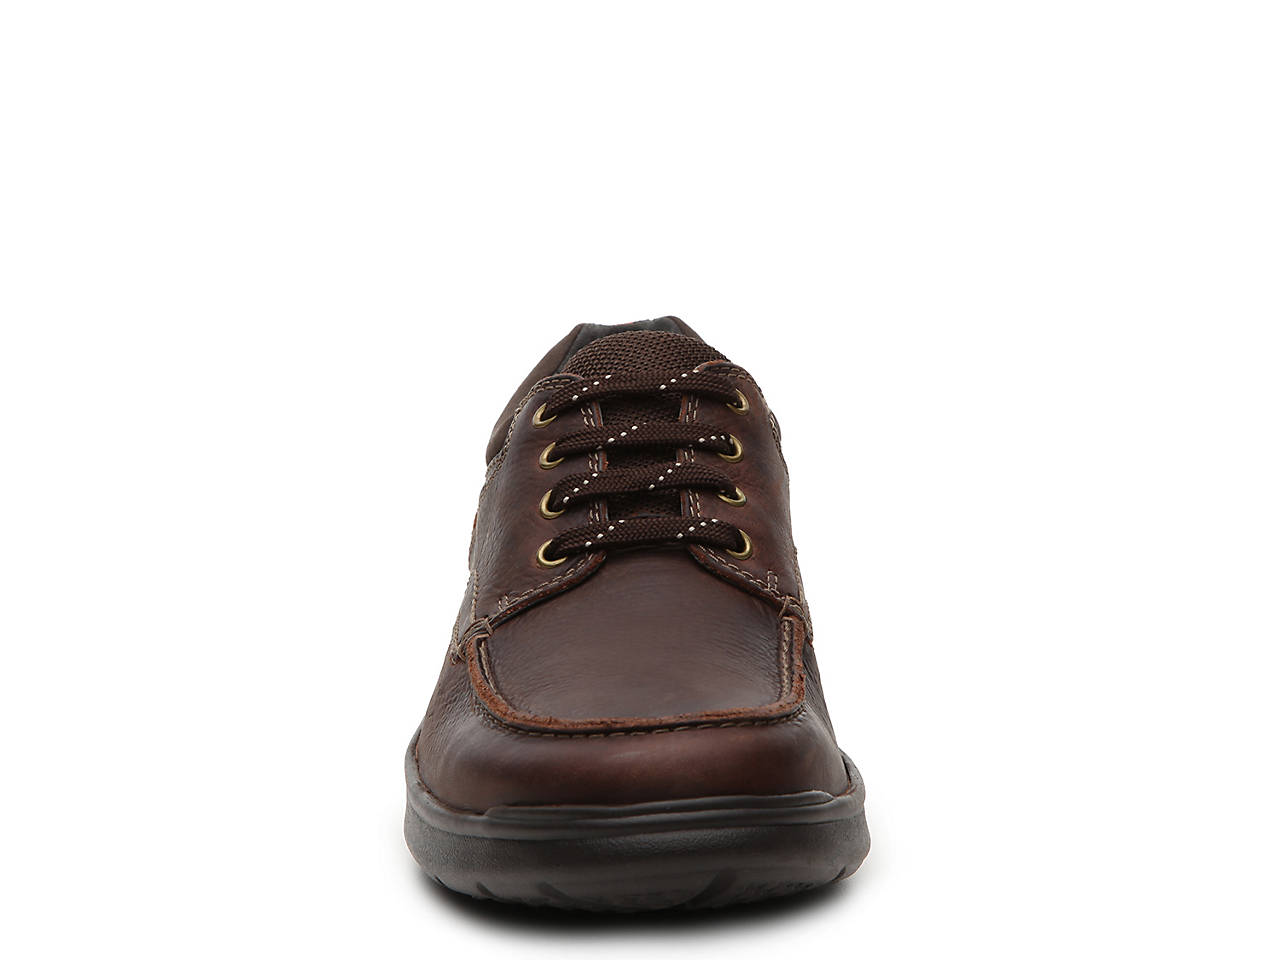 054583fe009 Clarks Cotrell Edge Oxford Men s Shoes